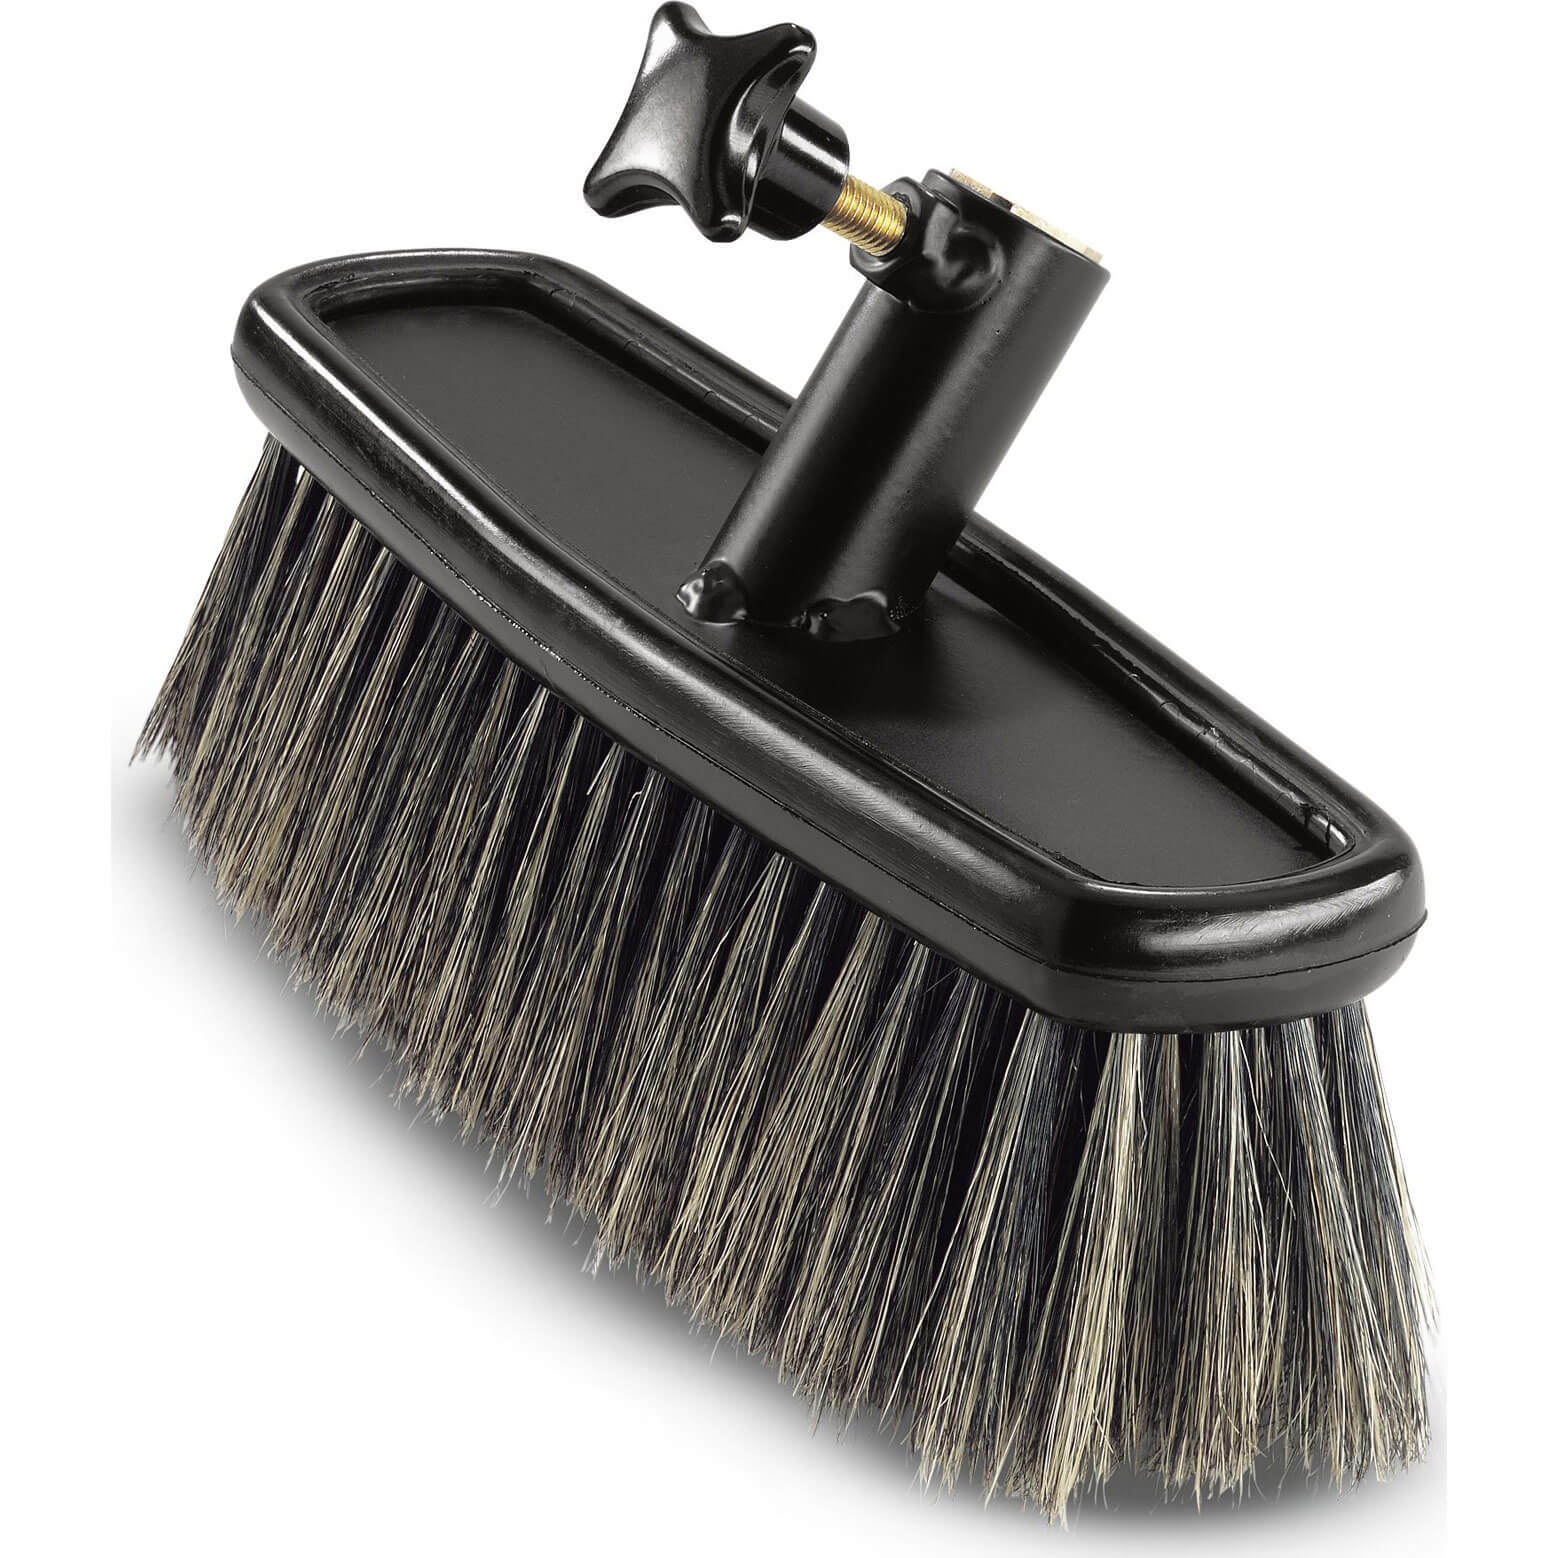 Karcher Pushon Wash Brush for Easylock HD & XPERT Pressure Washers